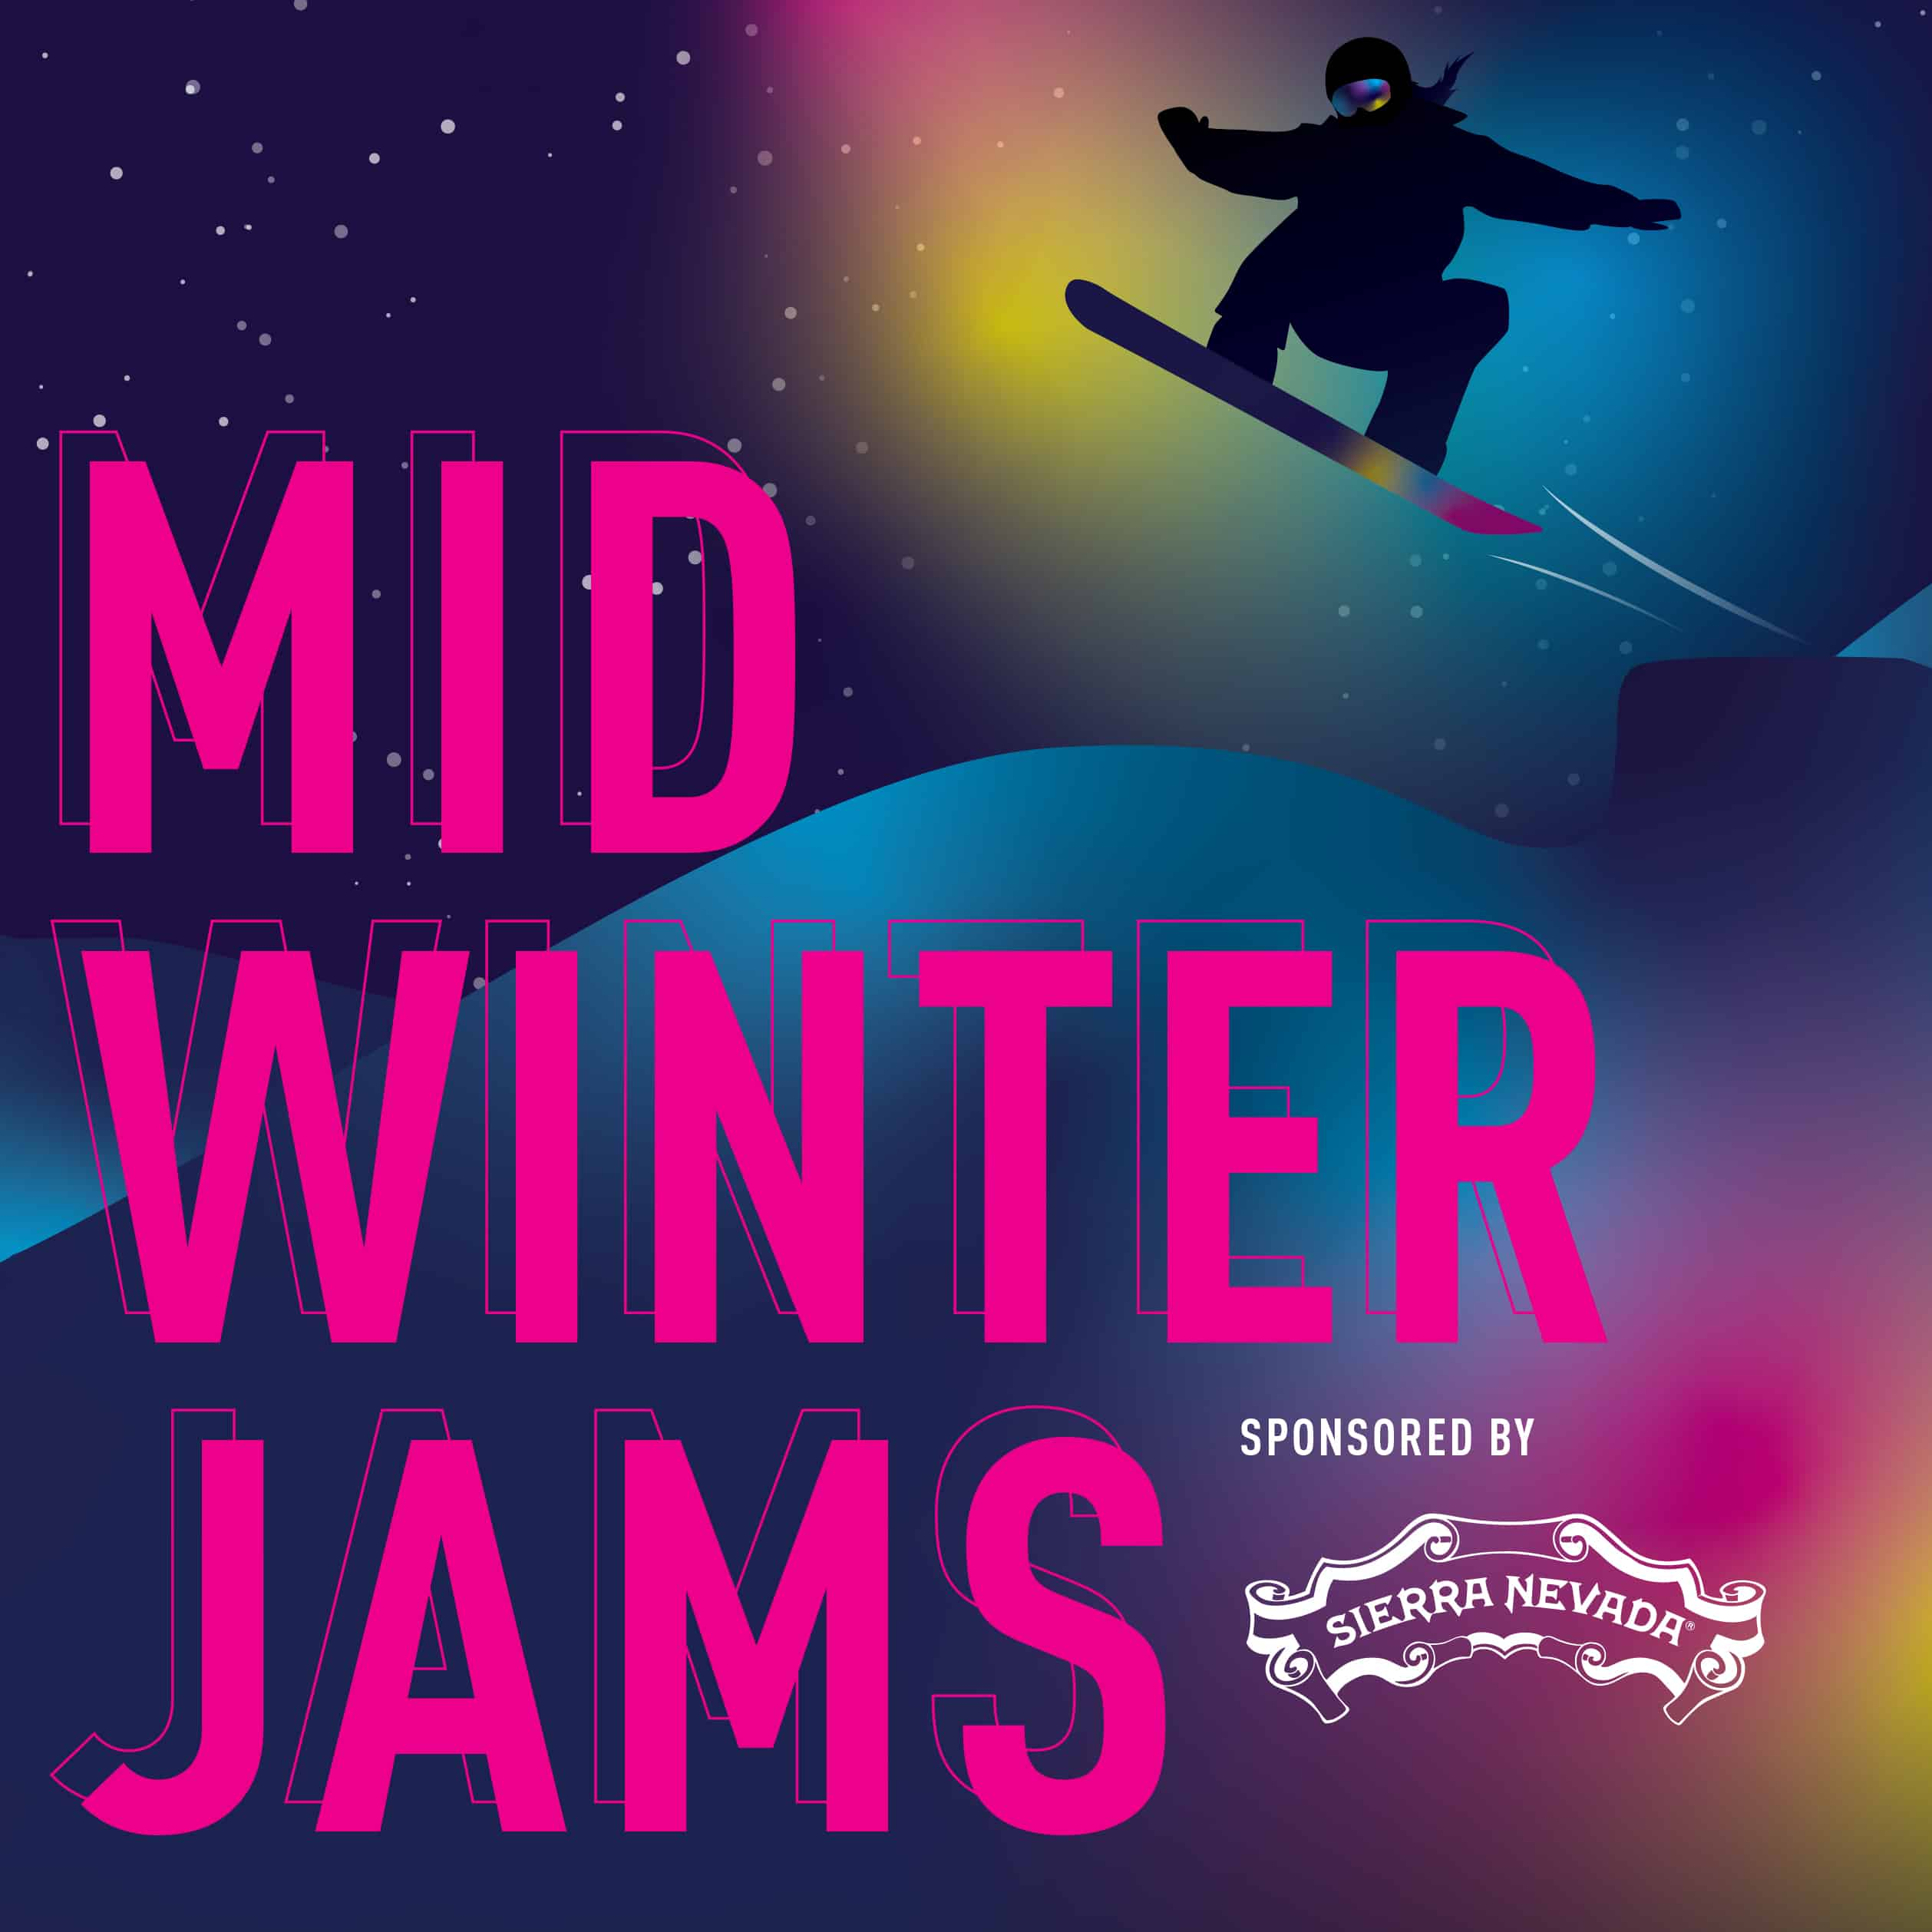 February 7th – Midwinter Jam Series